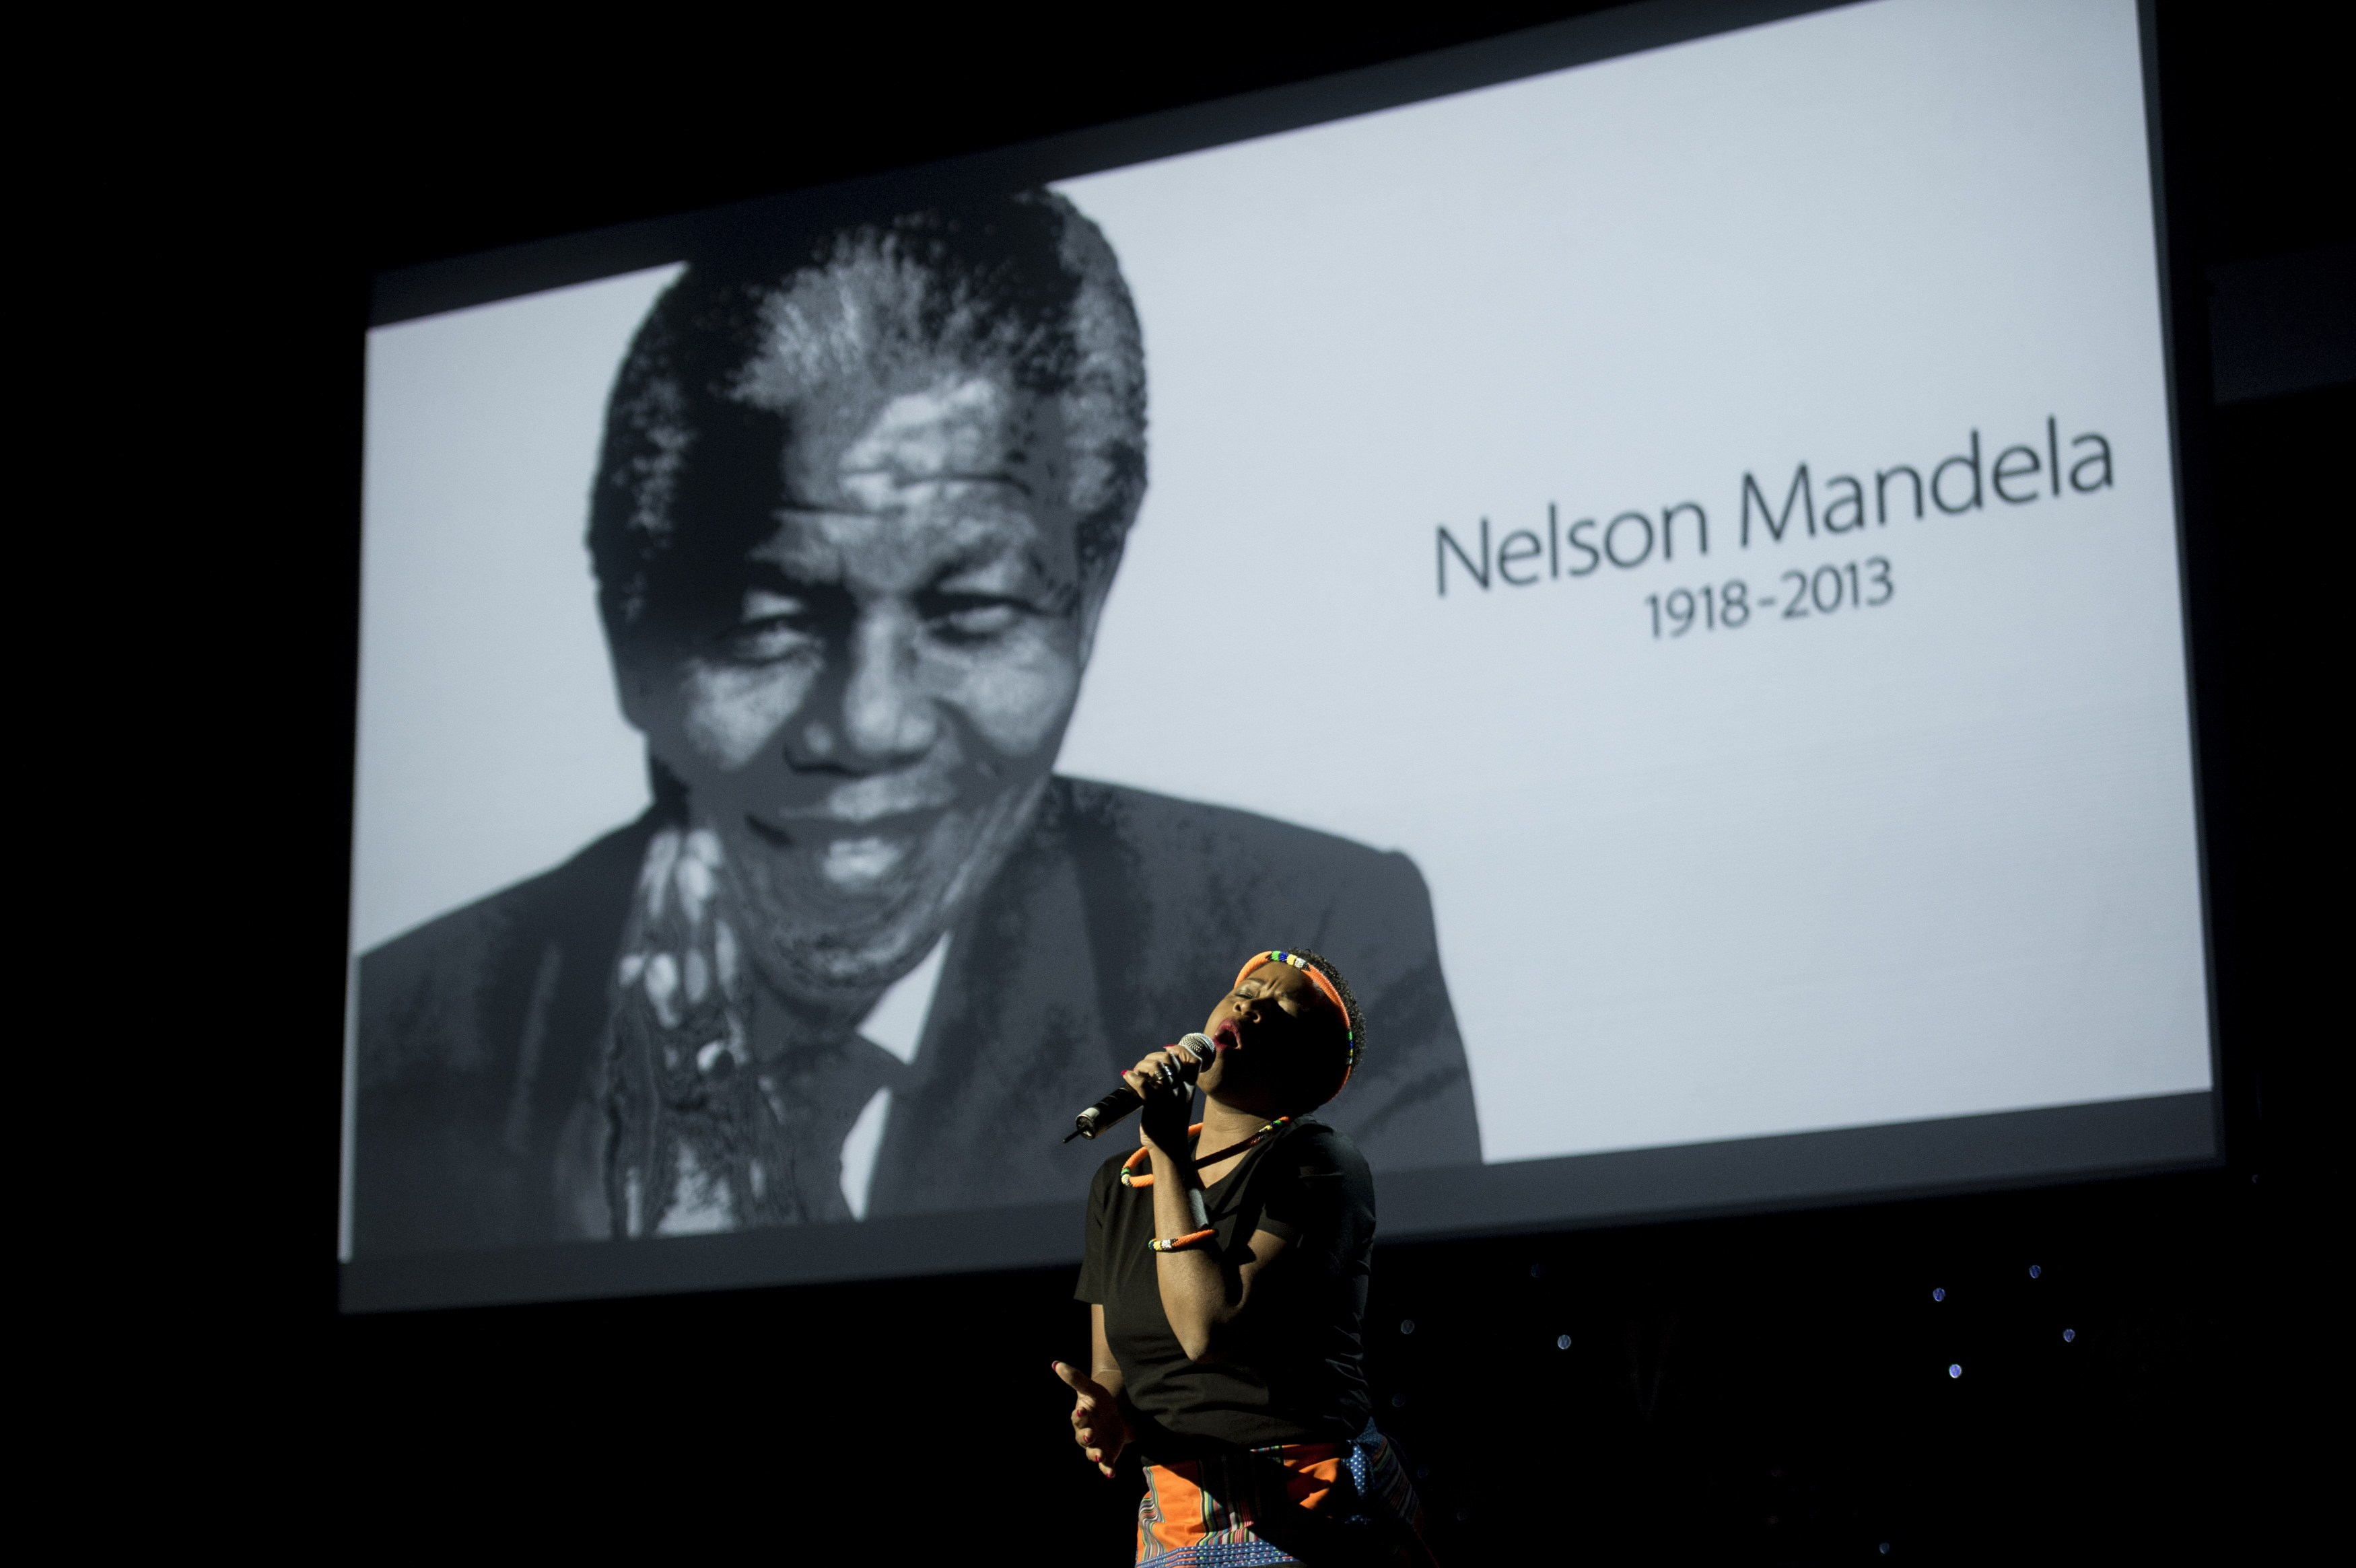 Civil Rights Leader Nelson Mandela Remembered A Year After